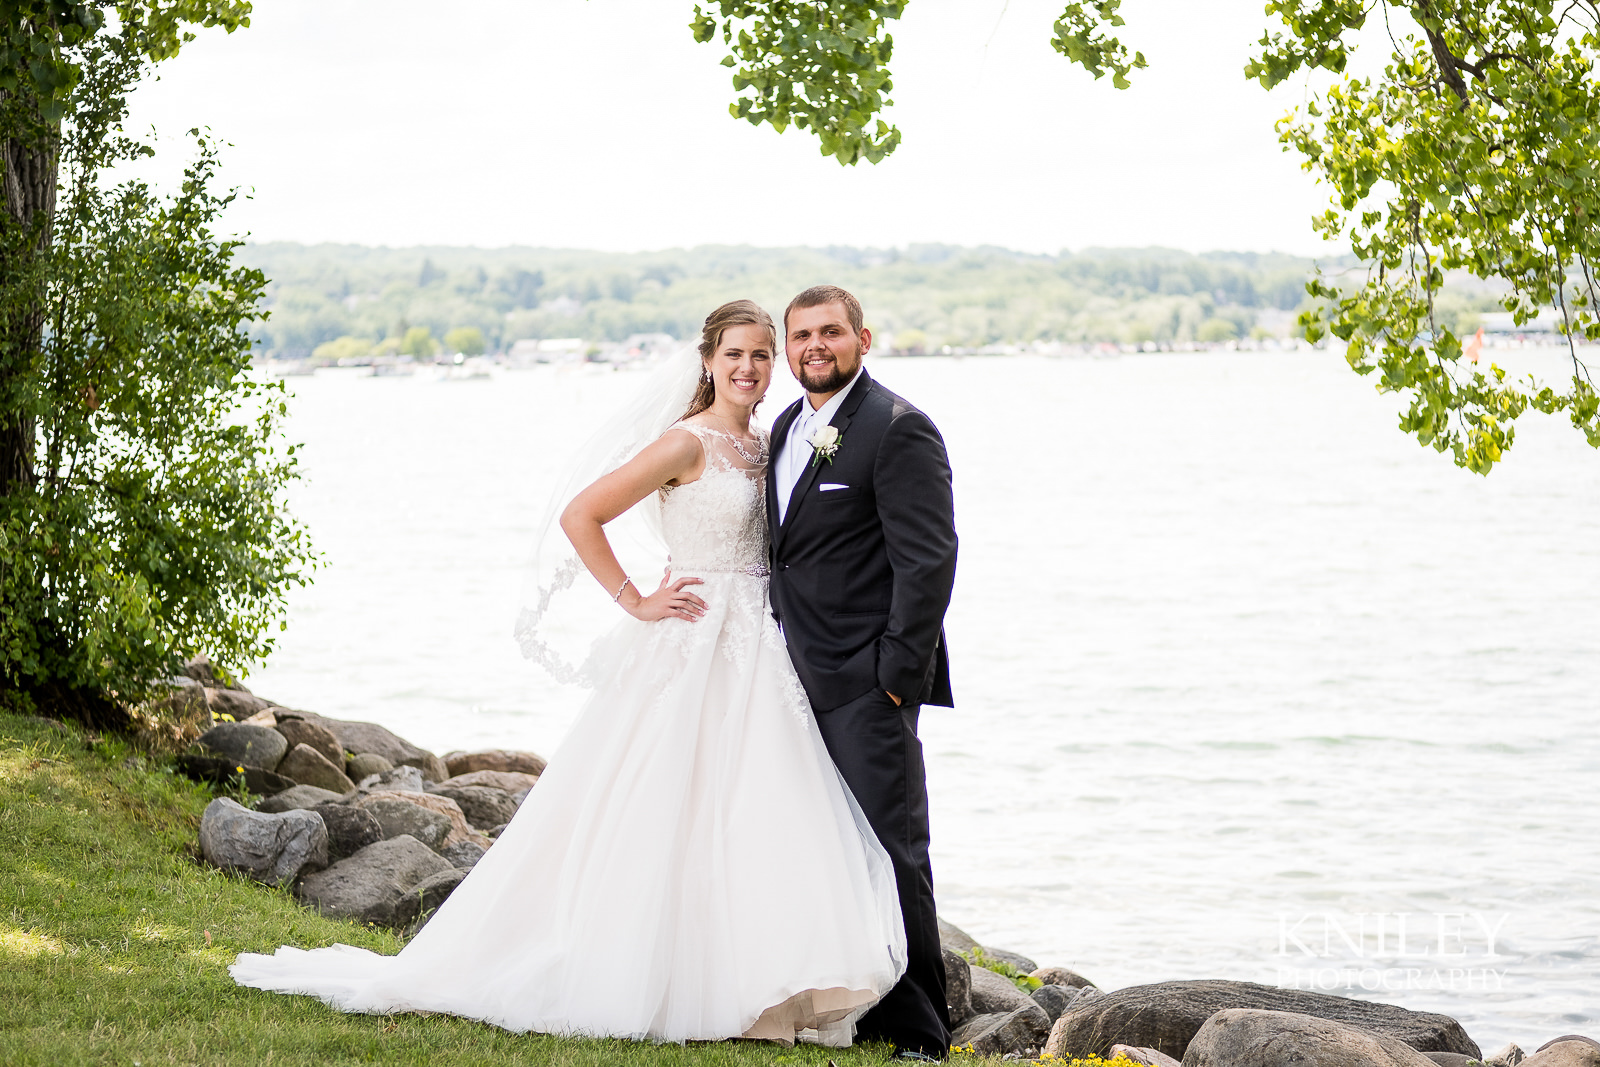 047 - Canandiagua NY wedding pictures - Kershaw Park - Canandiagua Lake - XT2A2464.jpg